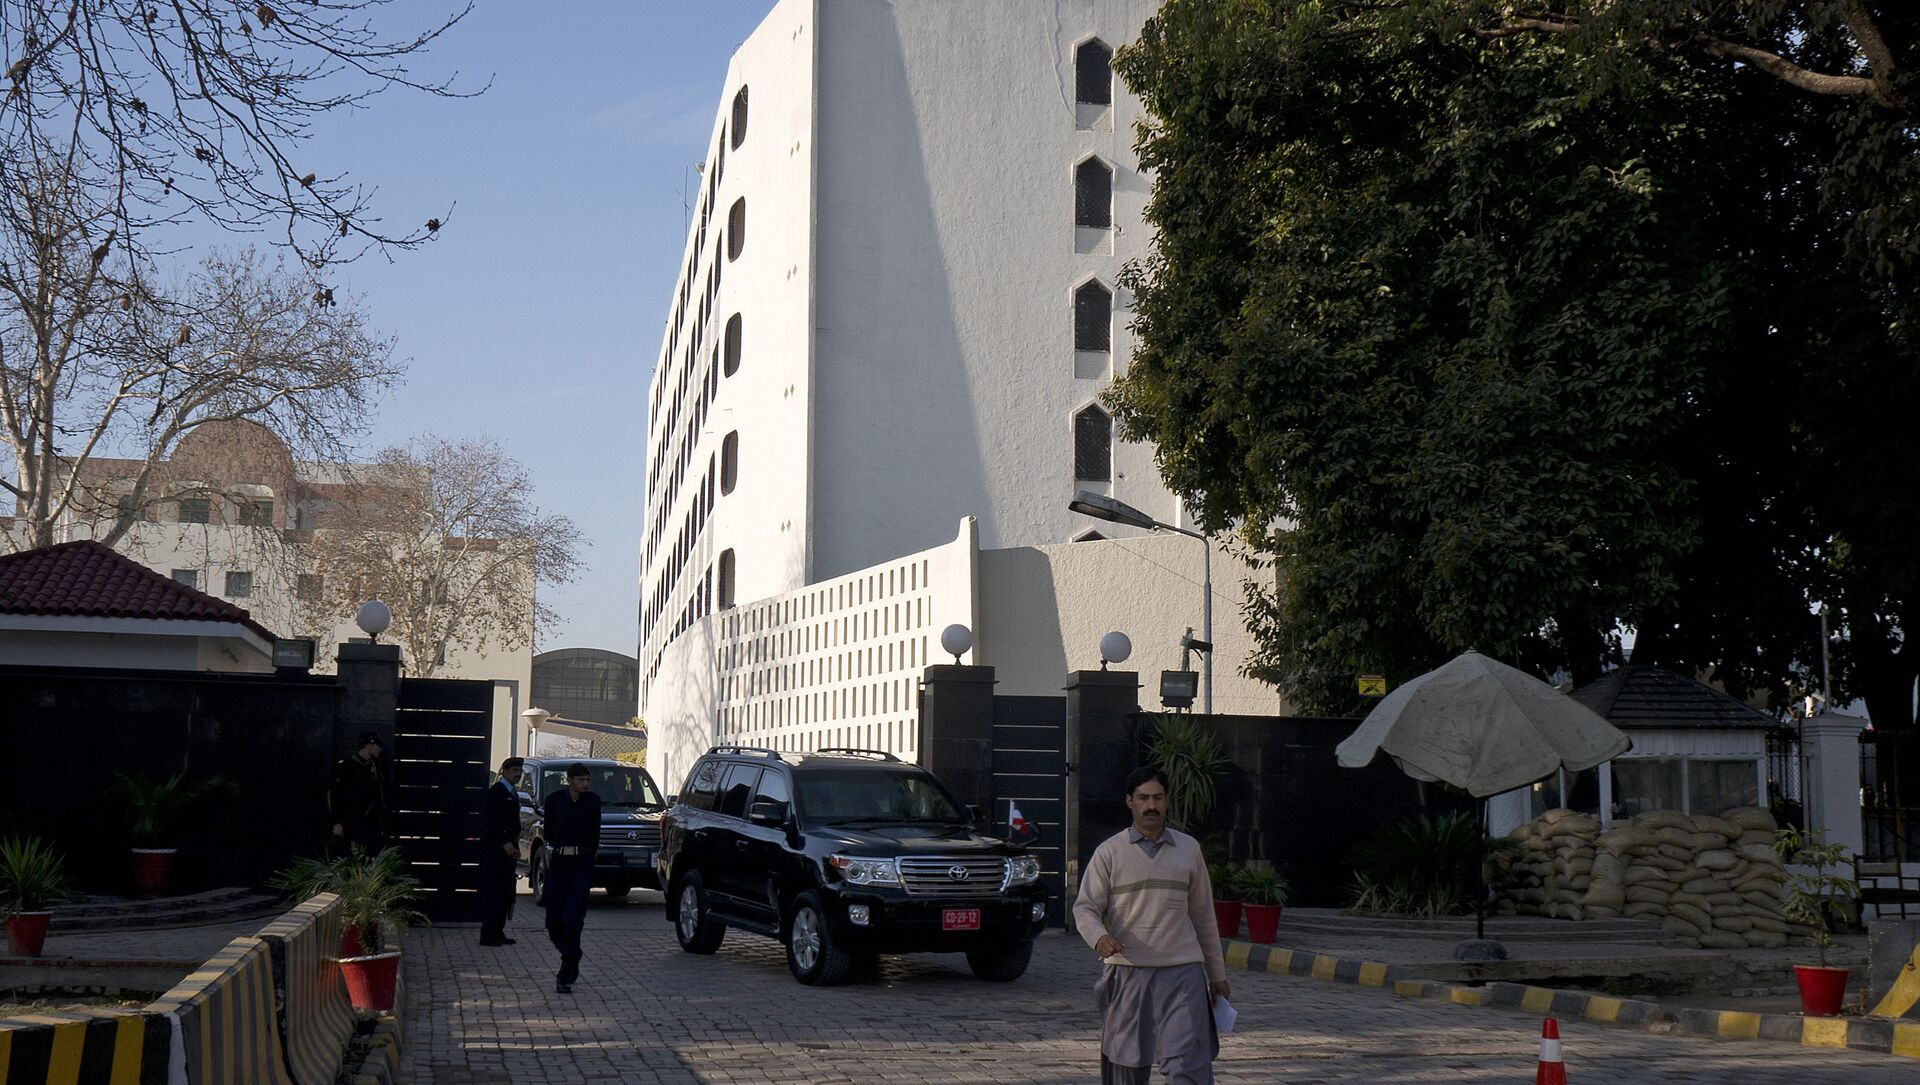 Cars leave the Foreign Ministry building in Islamabad, Pakistan (File) - Sputnik International, 1920, 23.07.2021